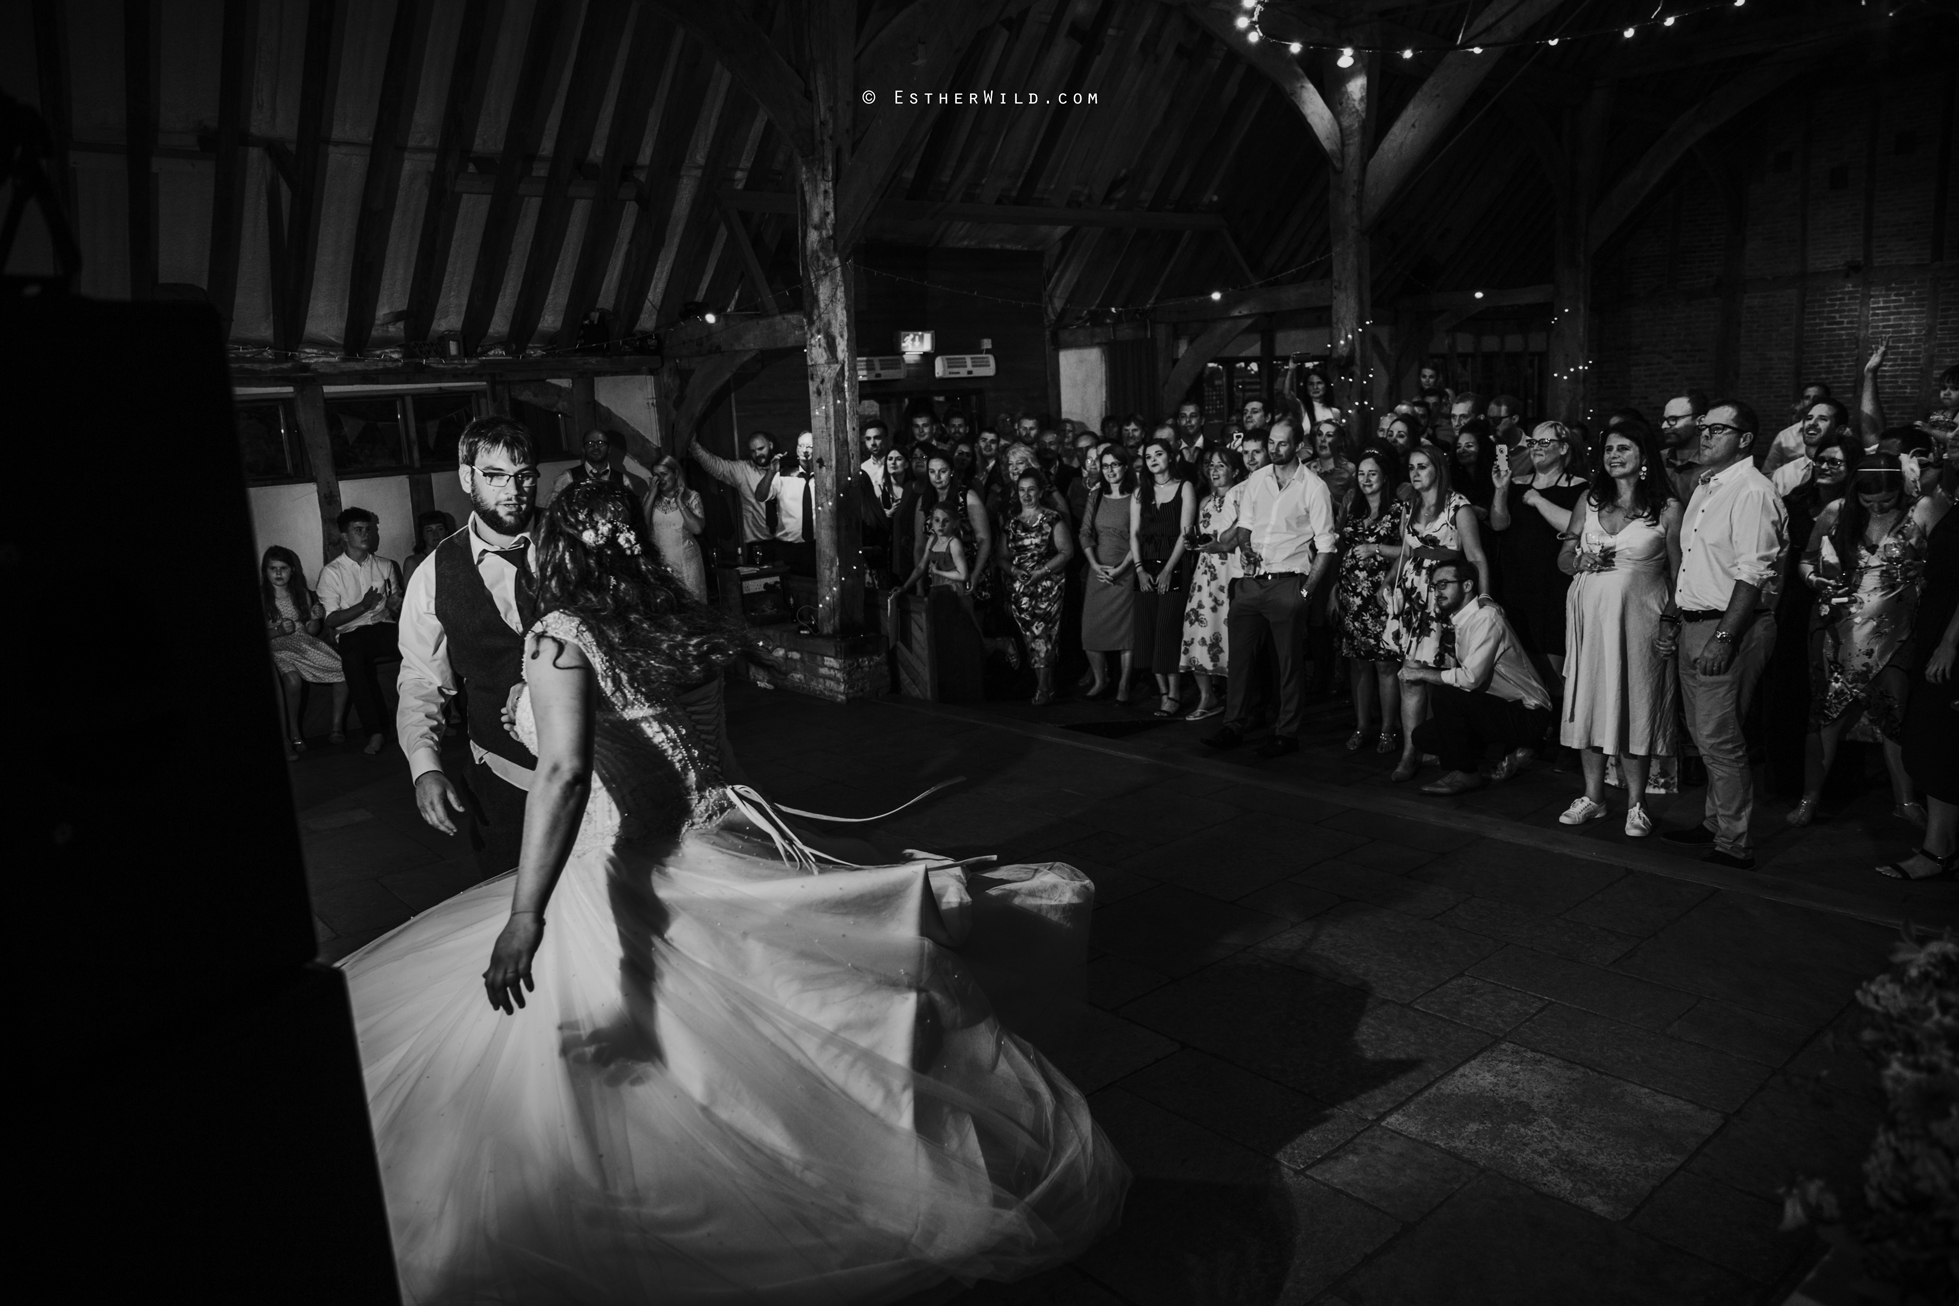 The_Red_Barn_Wedding_Kings_Lynn_Norfolk_IMG_3037-2.jpg